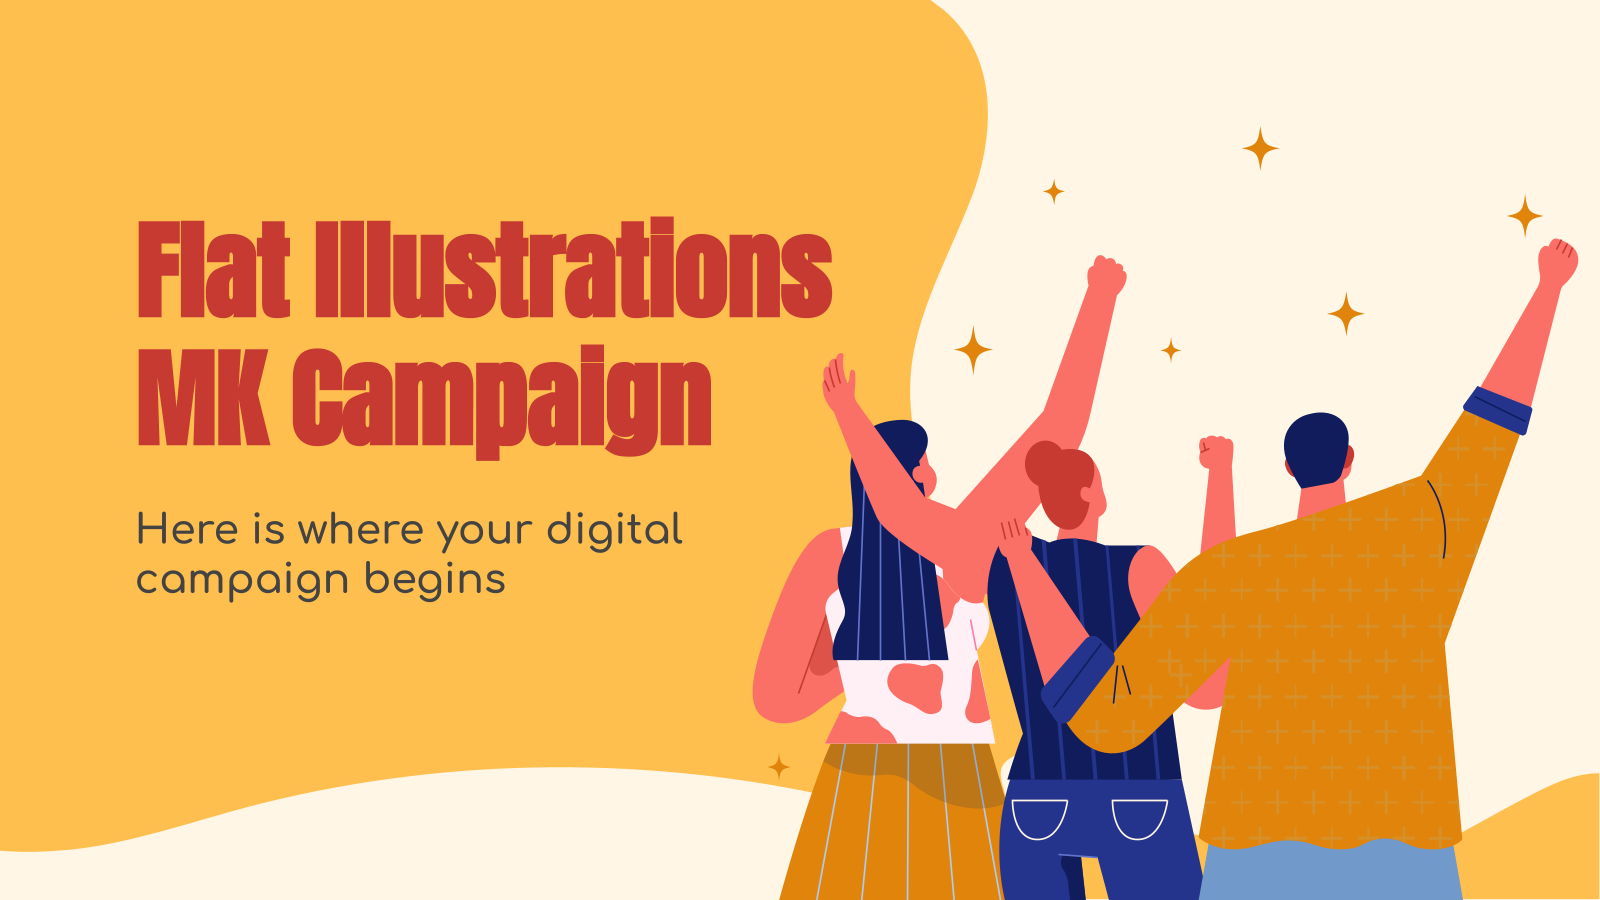 Flat Illustrations MK Campaign presentation template